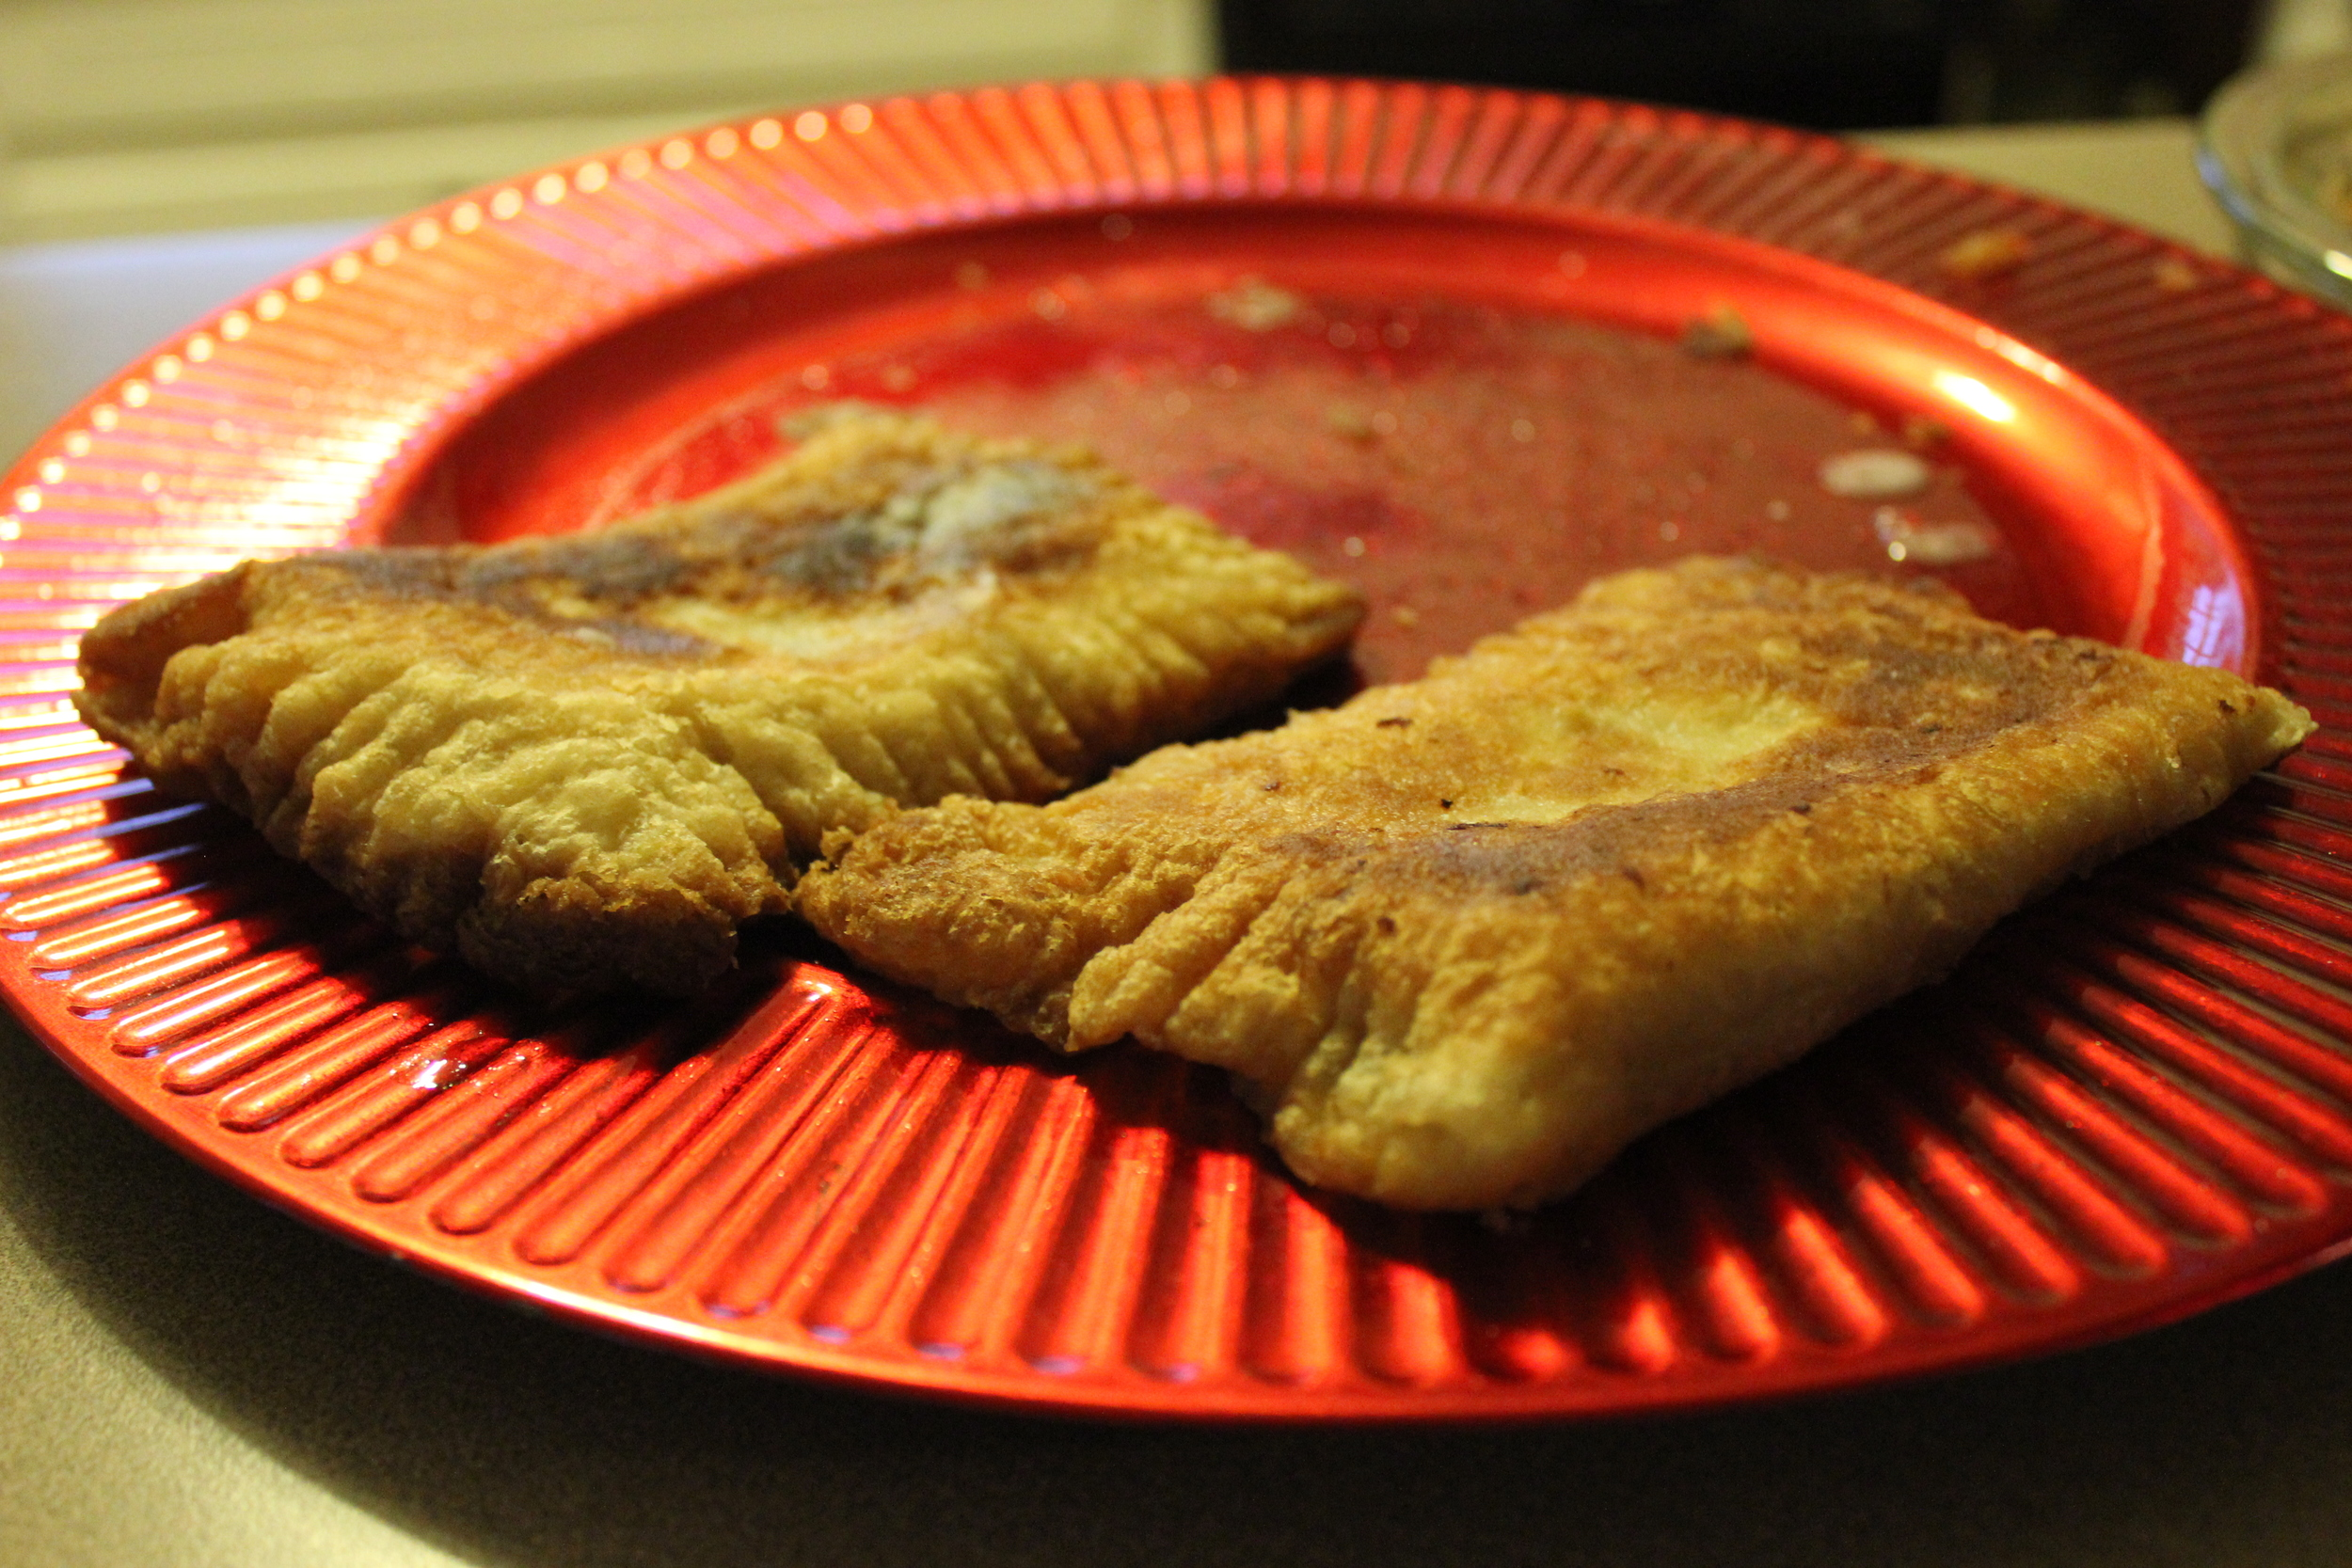 Fried pies. Ridiculously tasty. Heart attack on a plate.